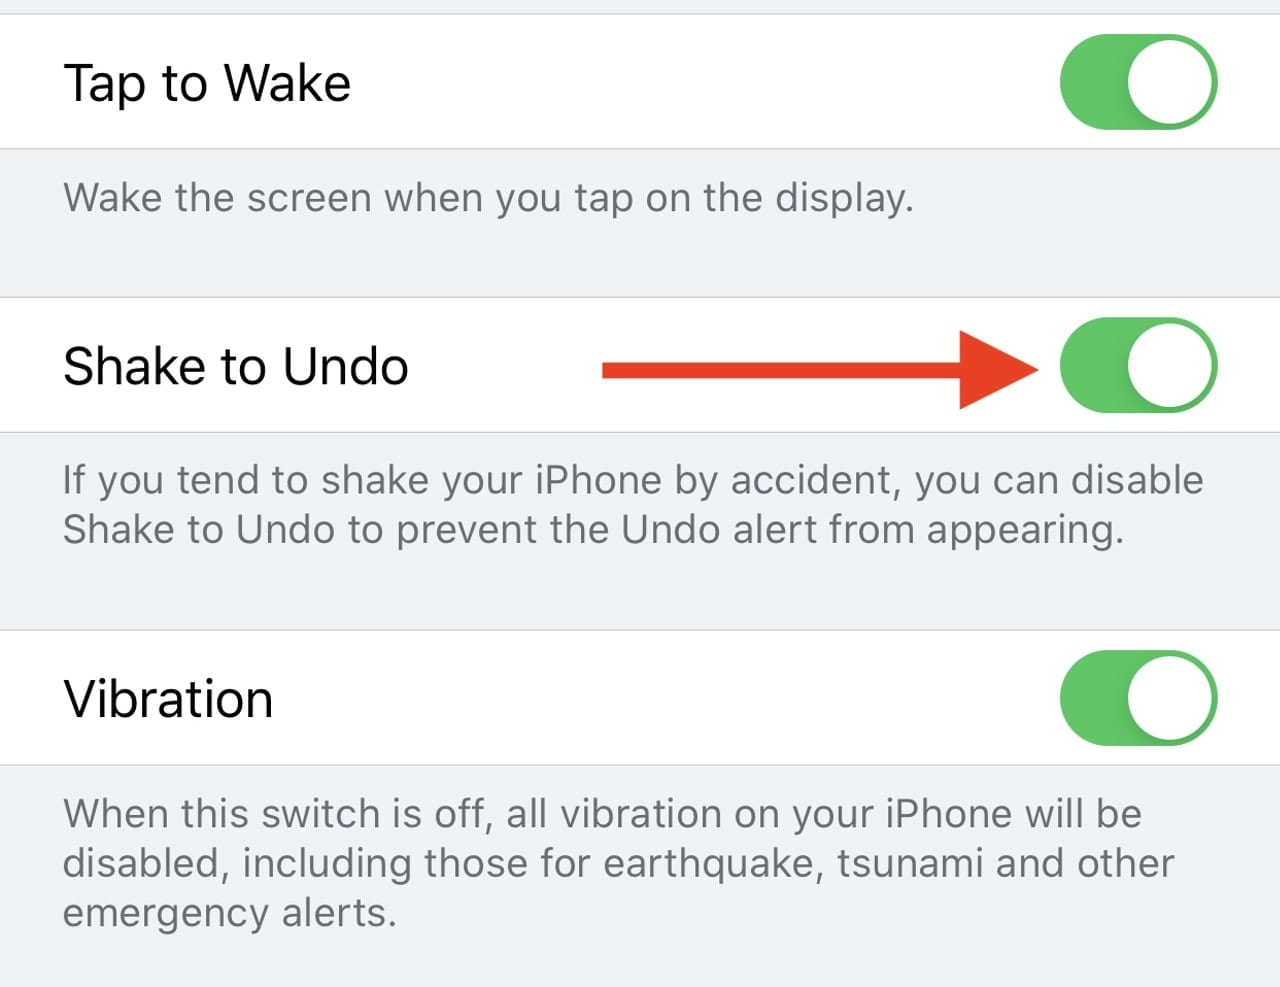 Tap the Shake to Undo button in Accessibility > Touch to disable the feature